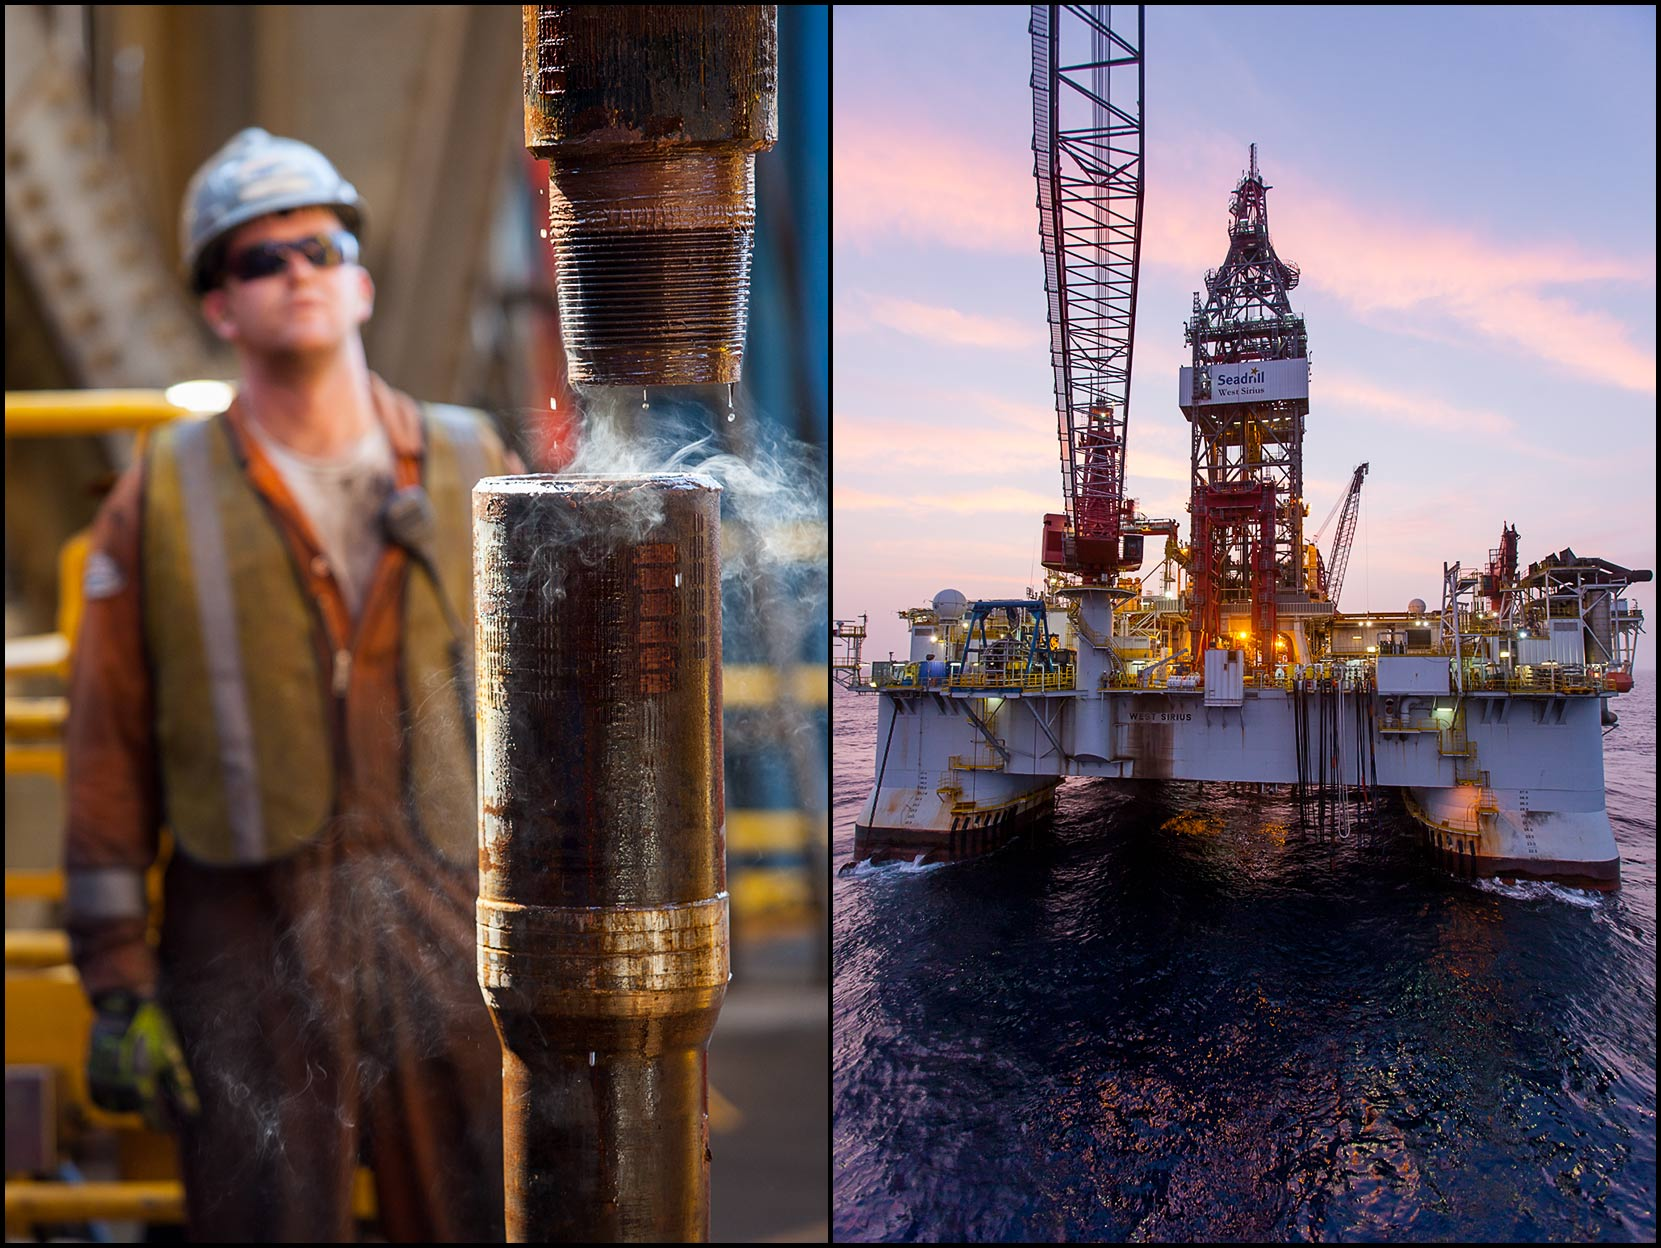 A roughneck watches a pipe connection break on the rig floor (L), A deepwater drilling rig at twilight (R).